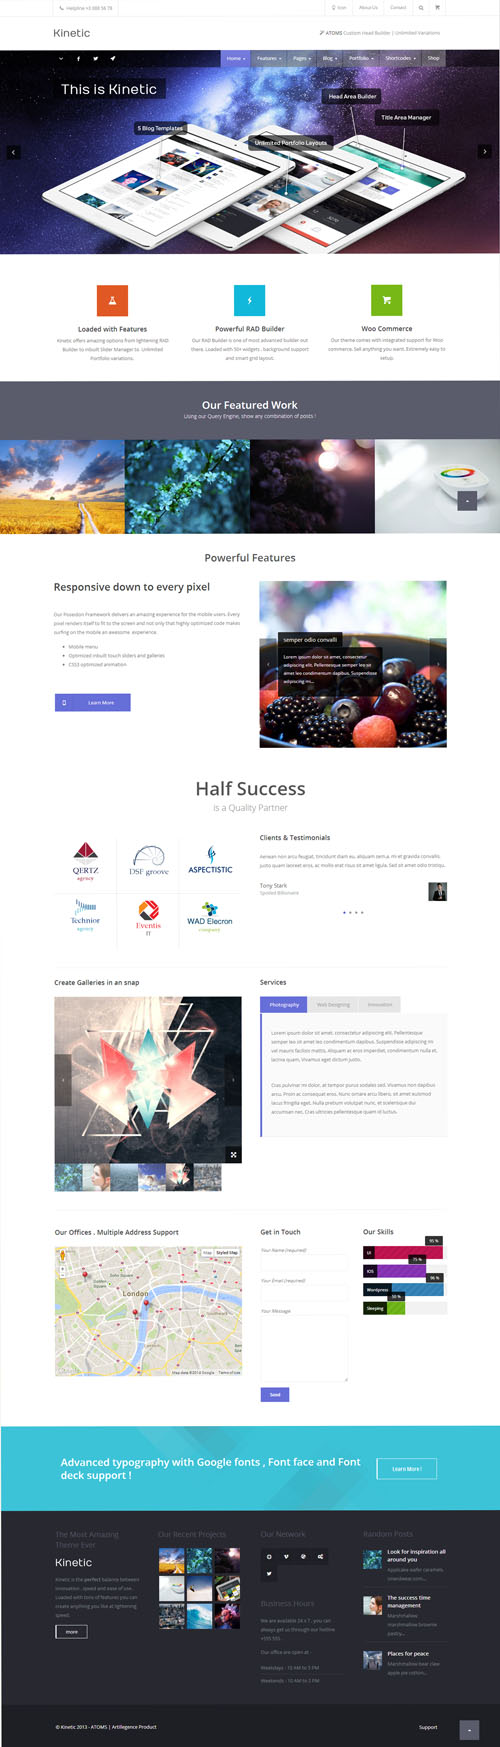 Kinetic - Multipurpose Responsive Theme